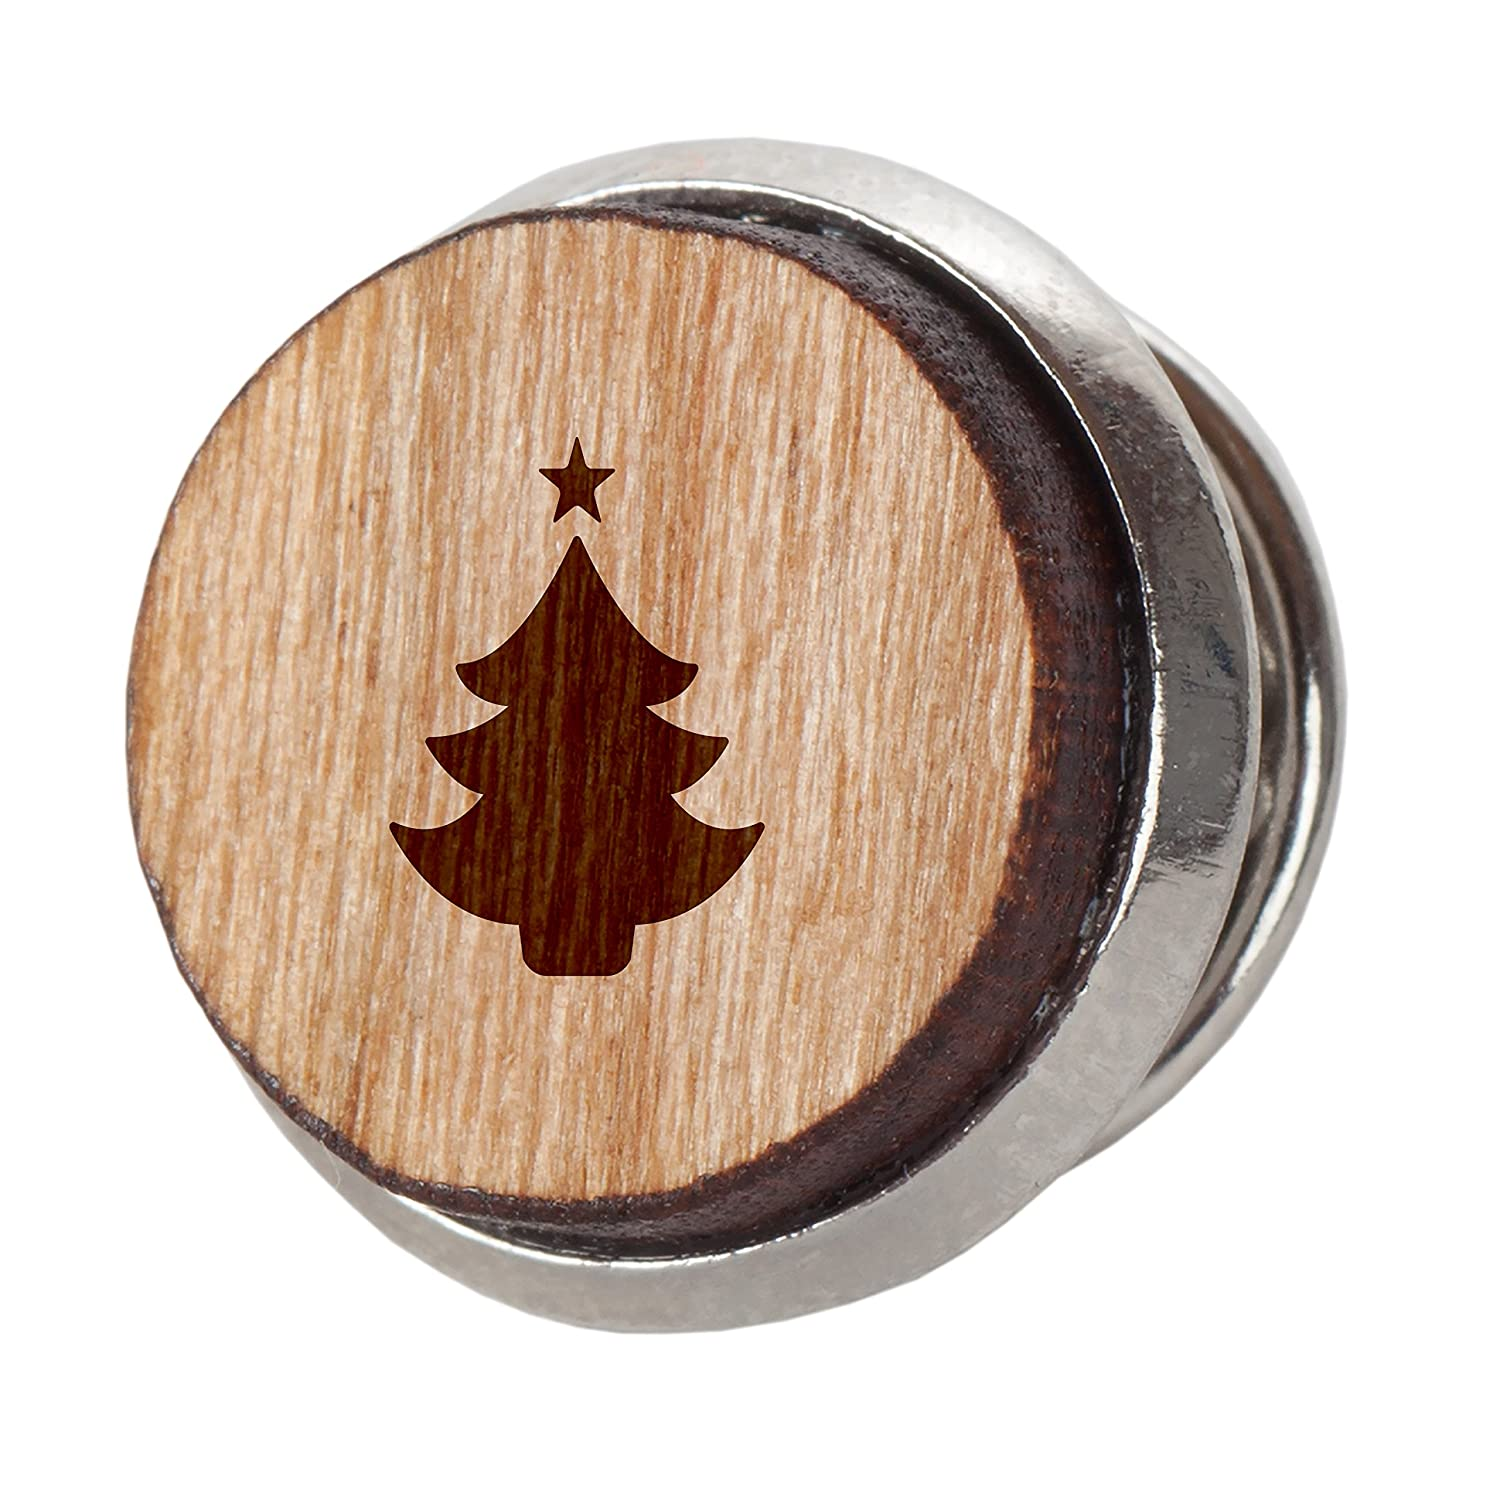 Christmas Tree Stylish Cherry Wood Tie Tack 12Mm Simple Tie Clip with Laser Engraved Design Engraved Tie Tack Gift